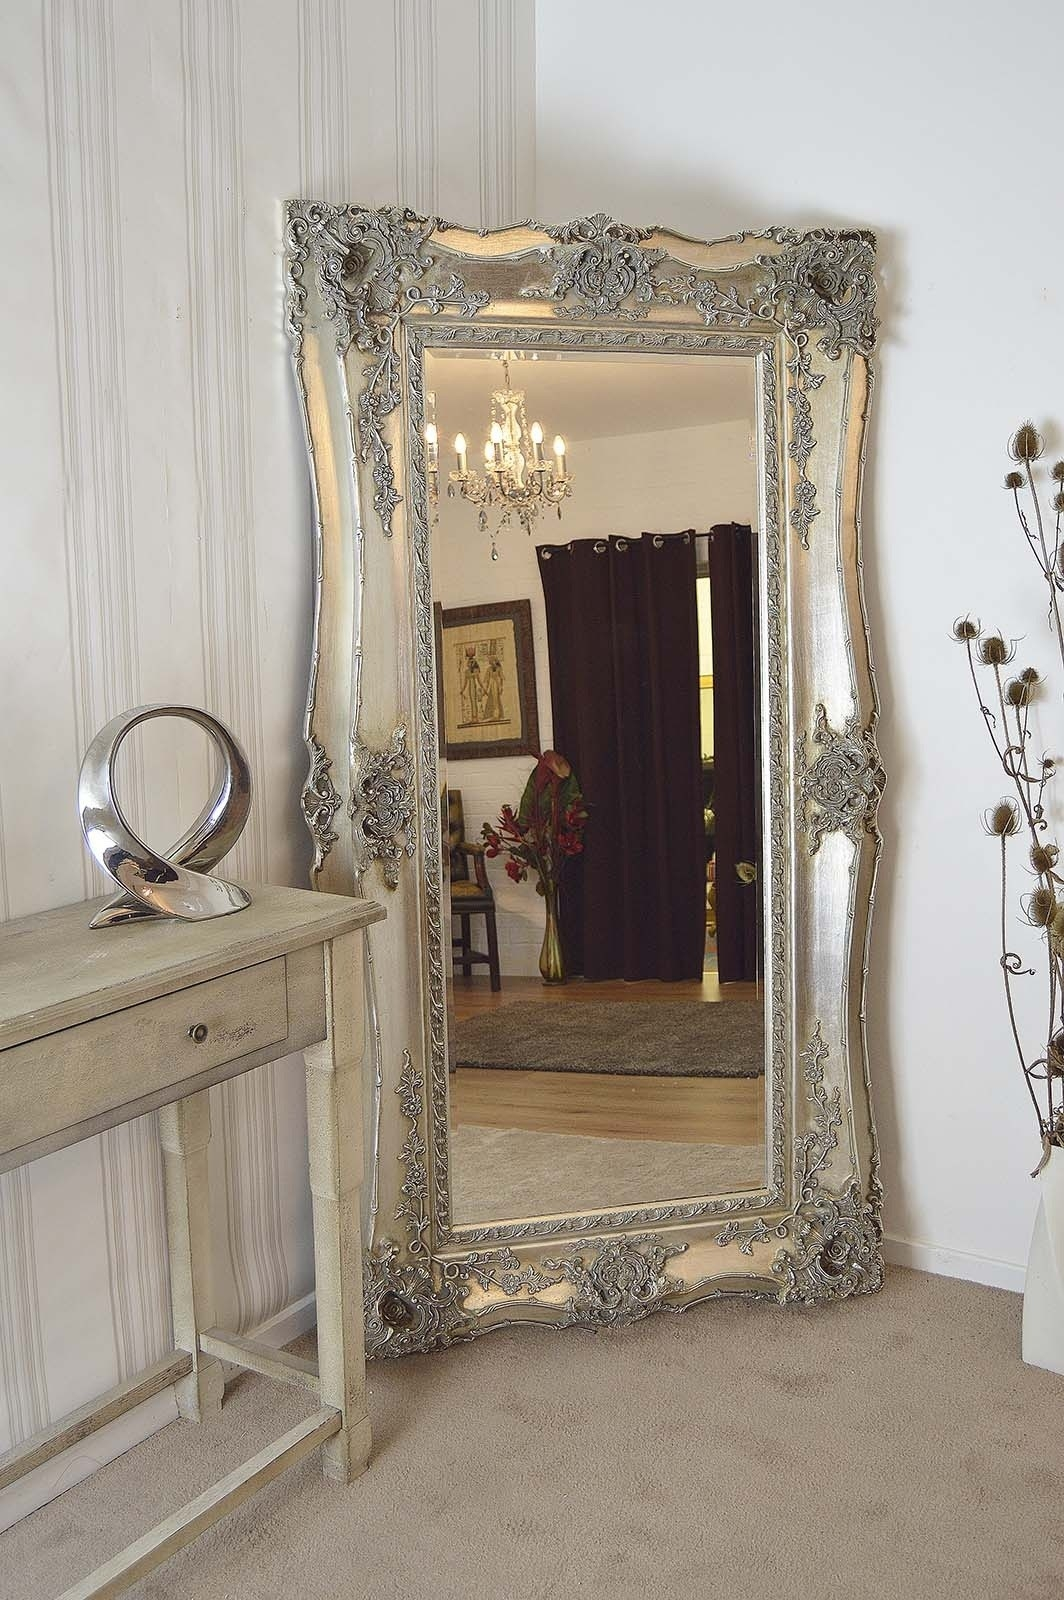 Bedroom Furniture Large Gold Mirror Free Standing Mirror Wooden Throughout Vintage Wall Mirrors For Sale (Image 4 of 15)